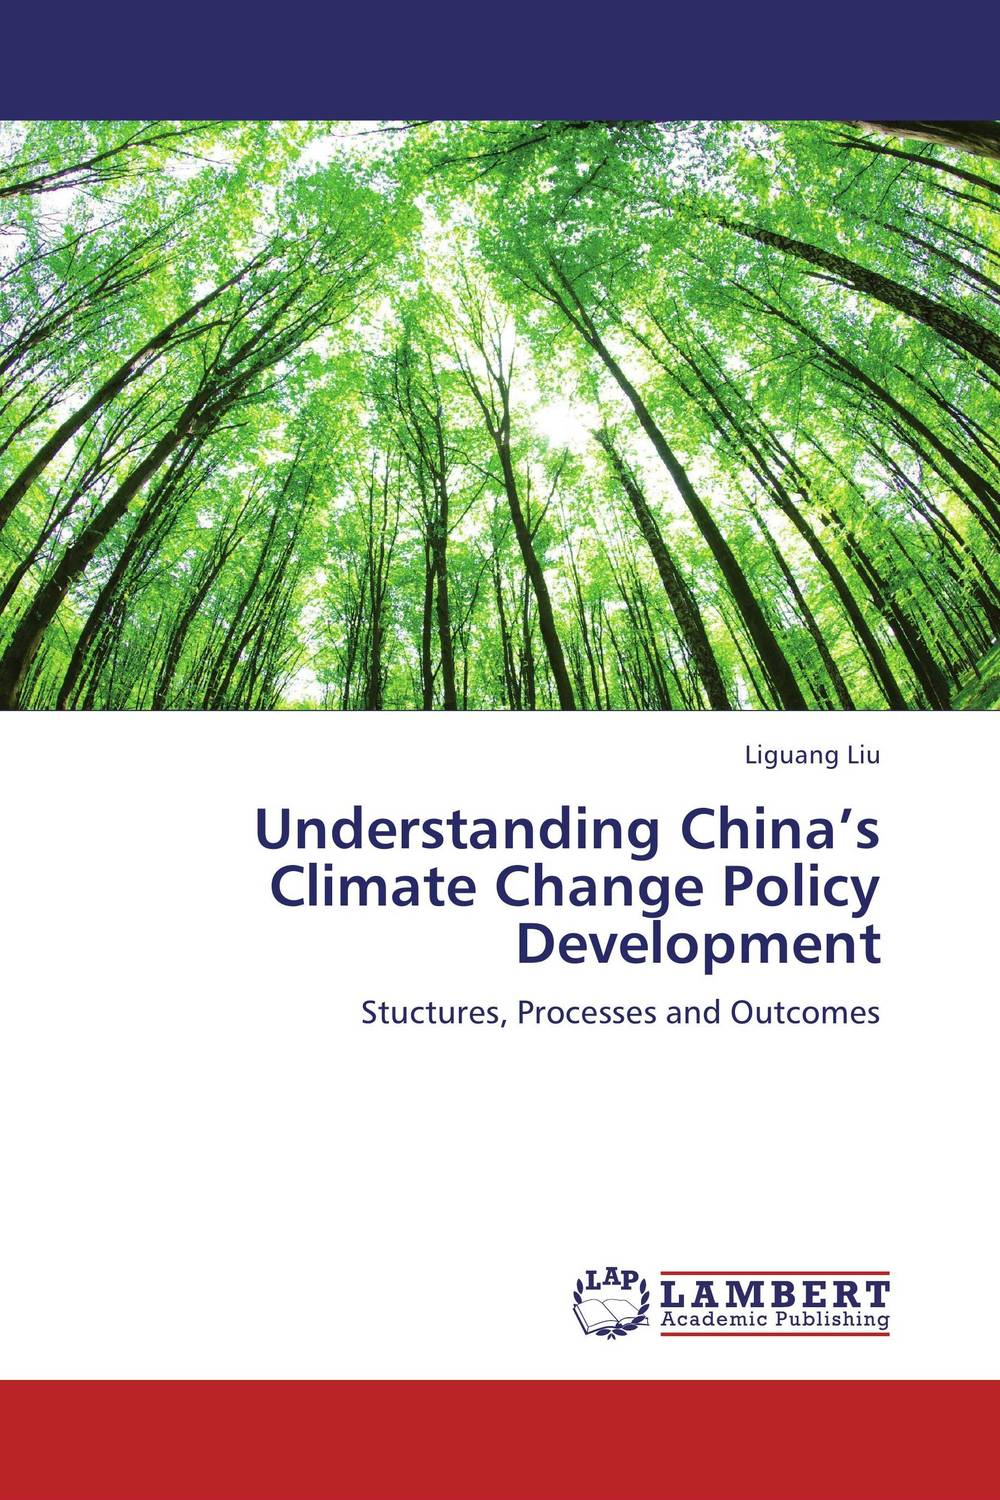 Understanding China's Climate Change Policy Development